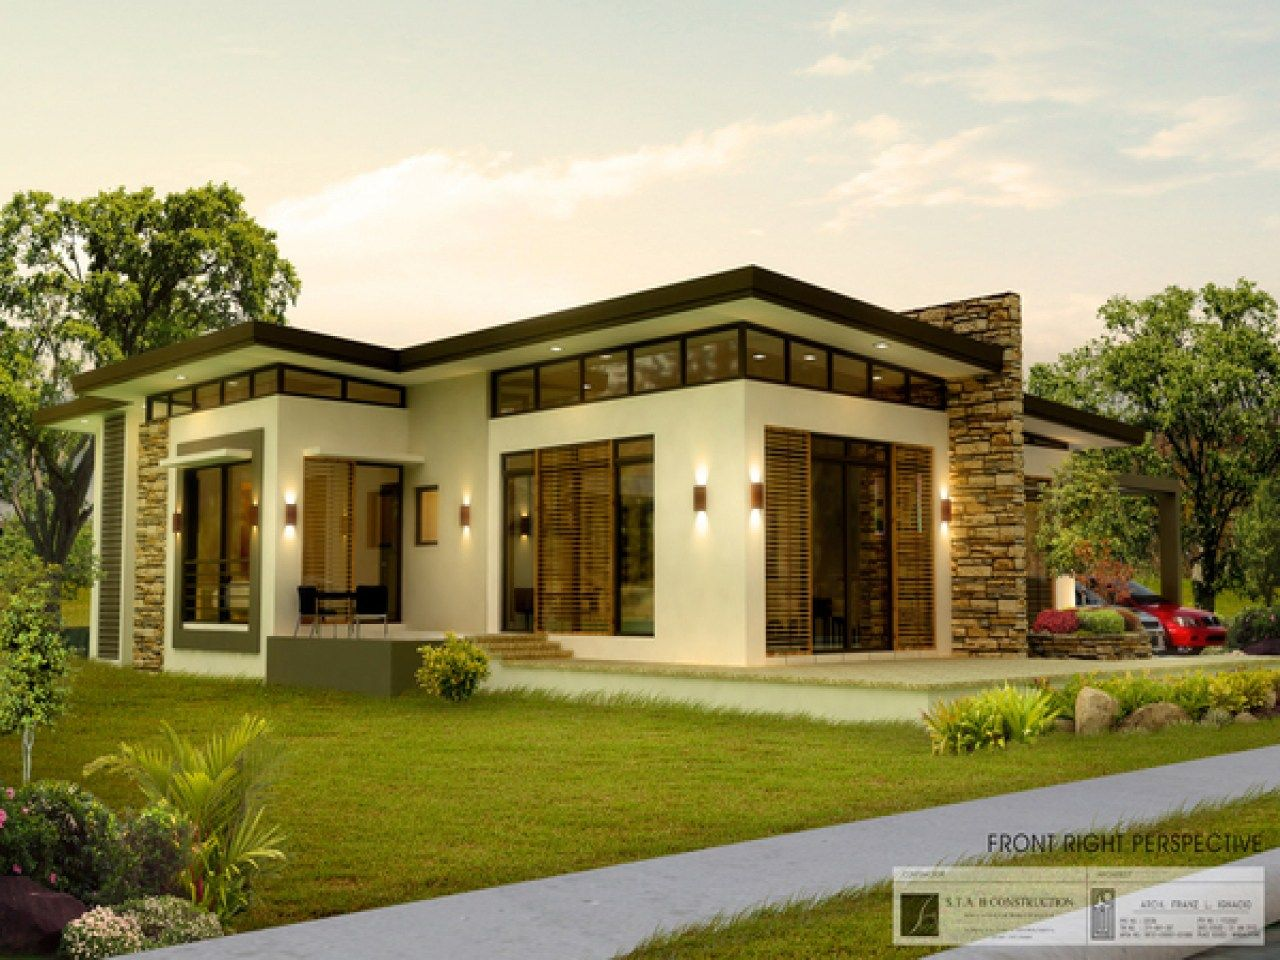 Home plans philippines bungalow house plans philippines Decorating bungalow style home